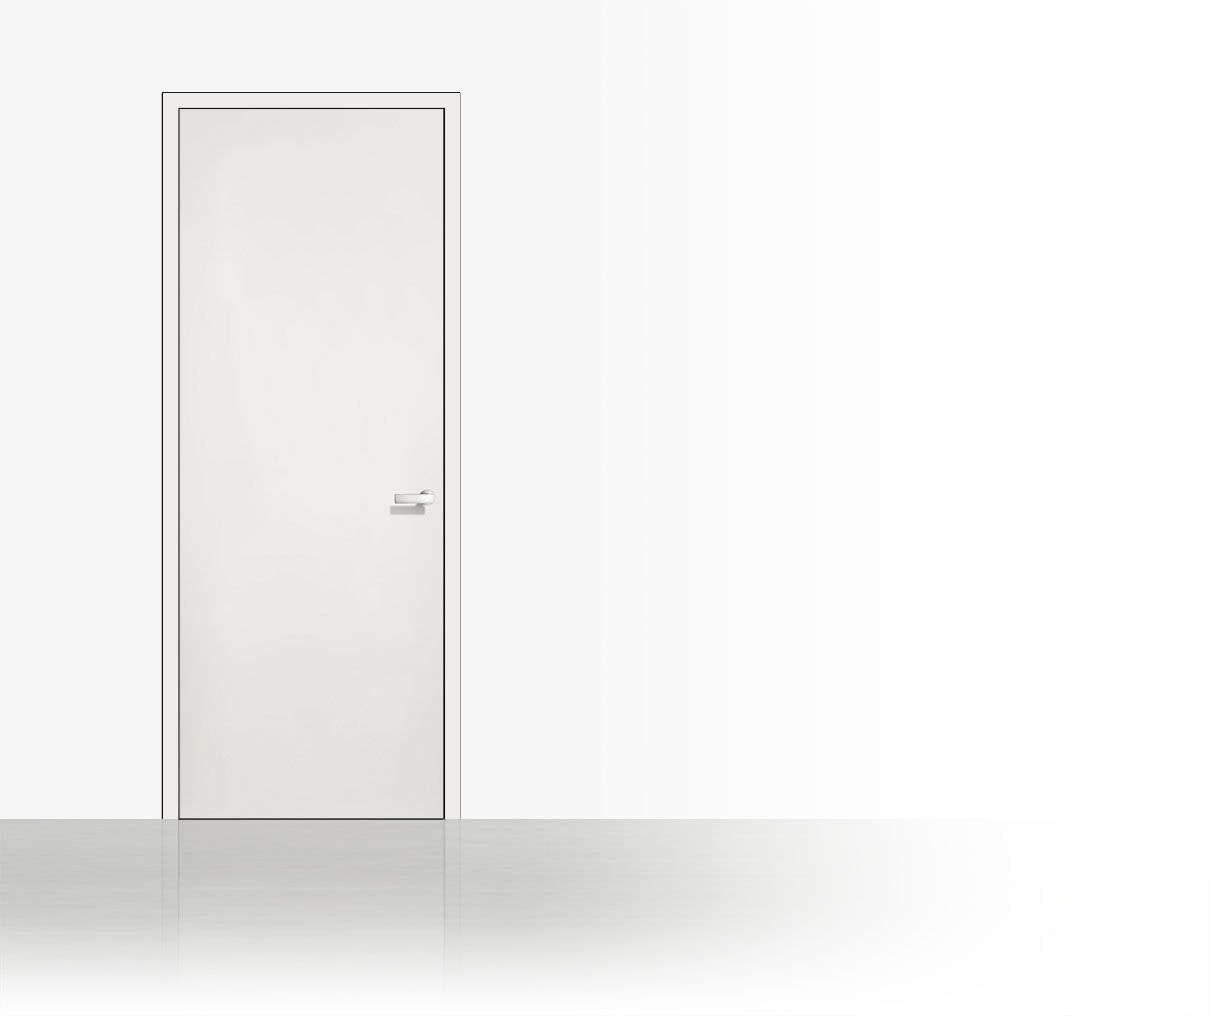 Cube Lacquer flush fitting door frame and wall - Bodu0027or KTM  sc 1 st  Pinterest & Cube Lacquer flush fitting door frame and wall - Bodu0027or KTM ...